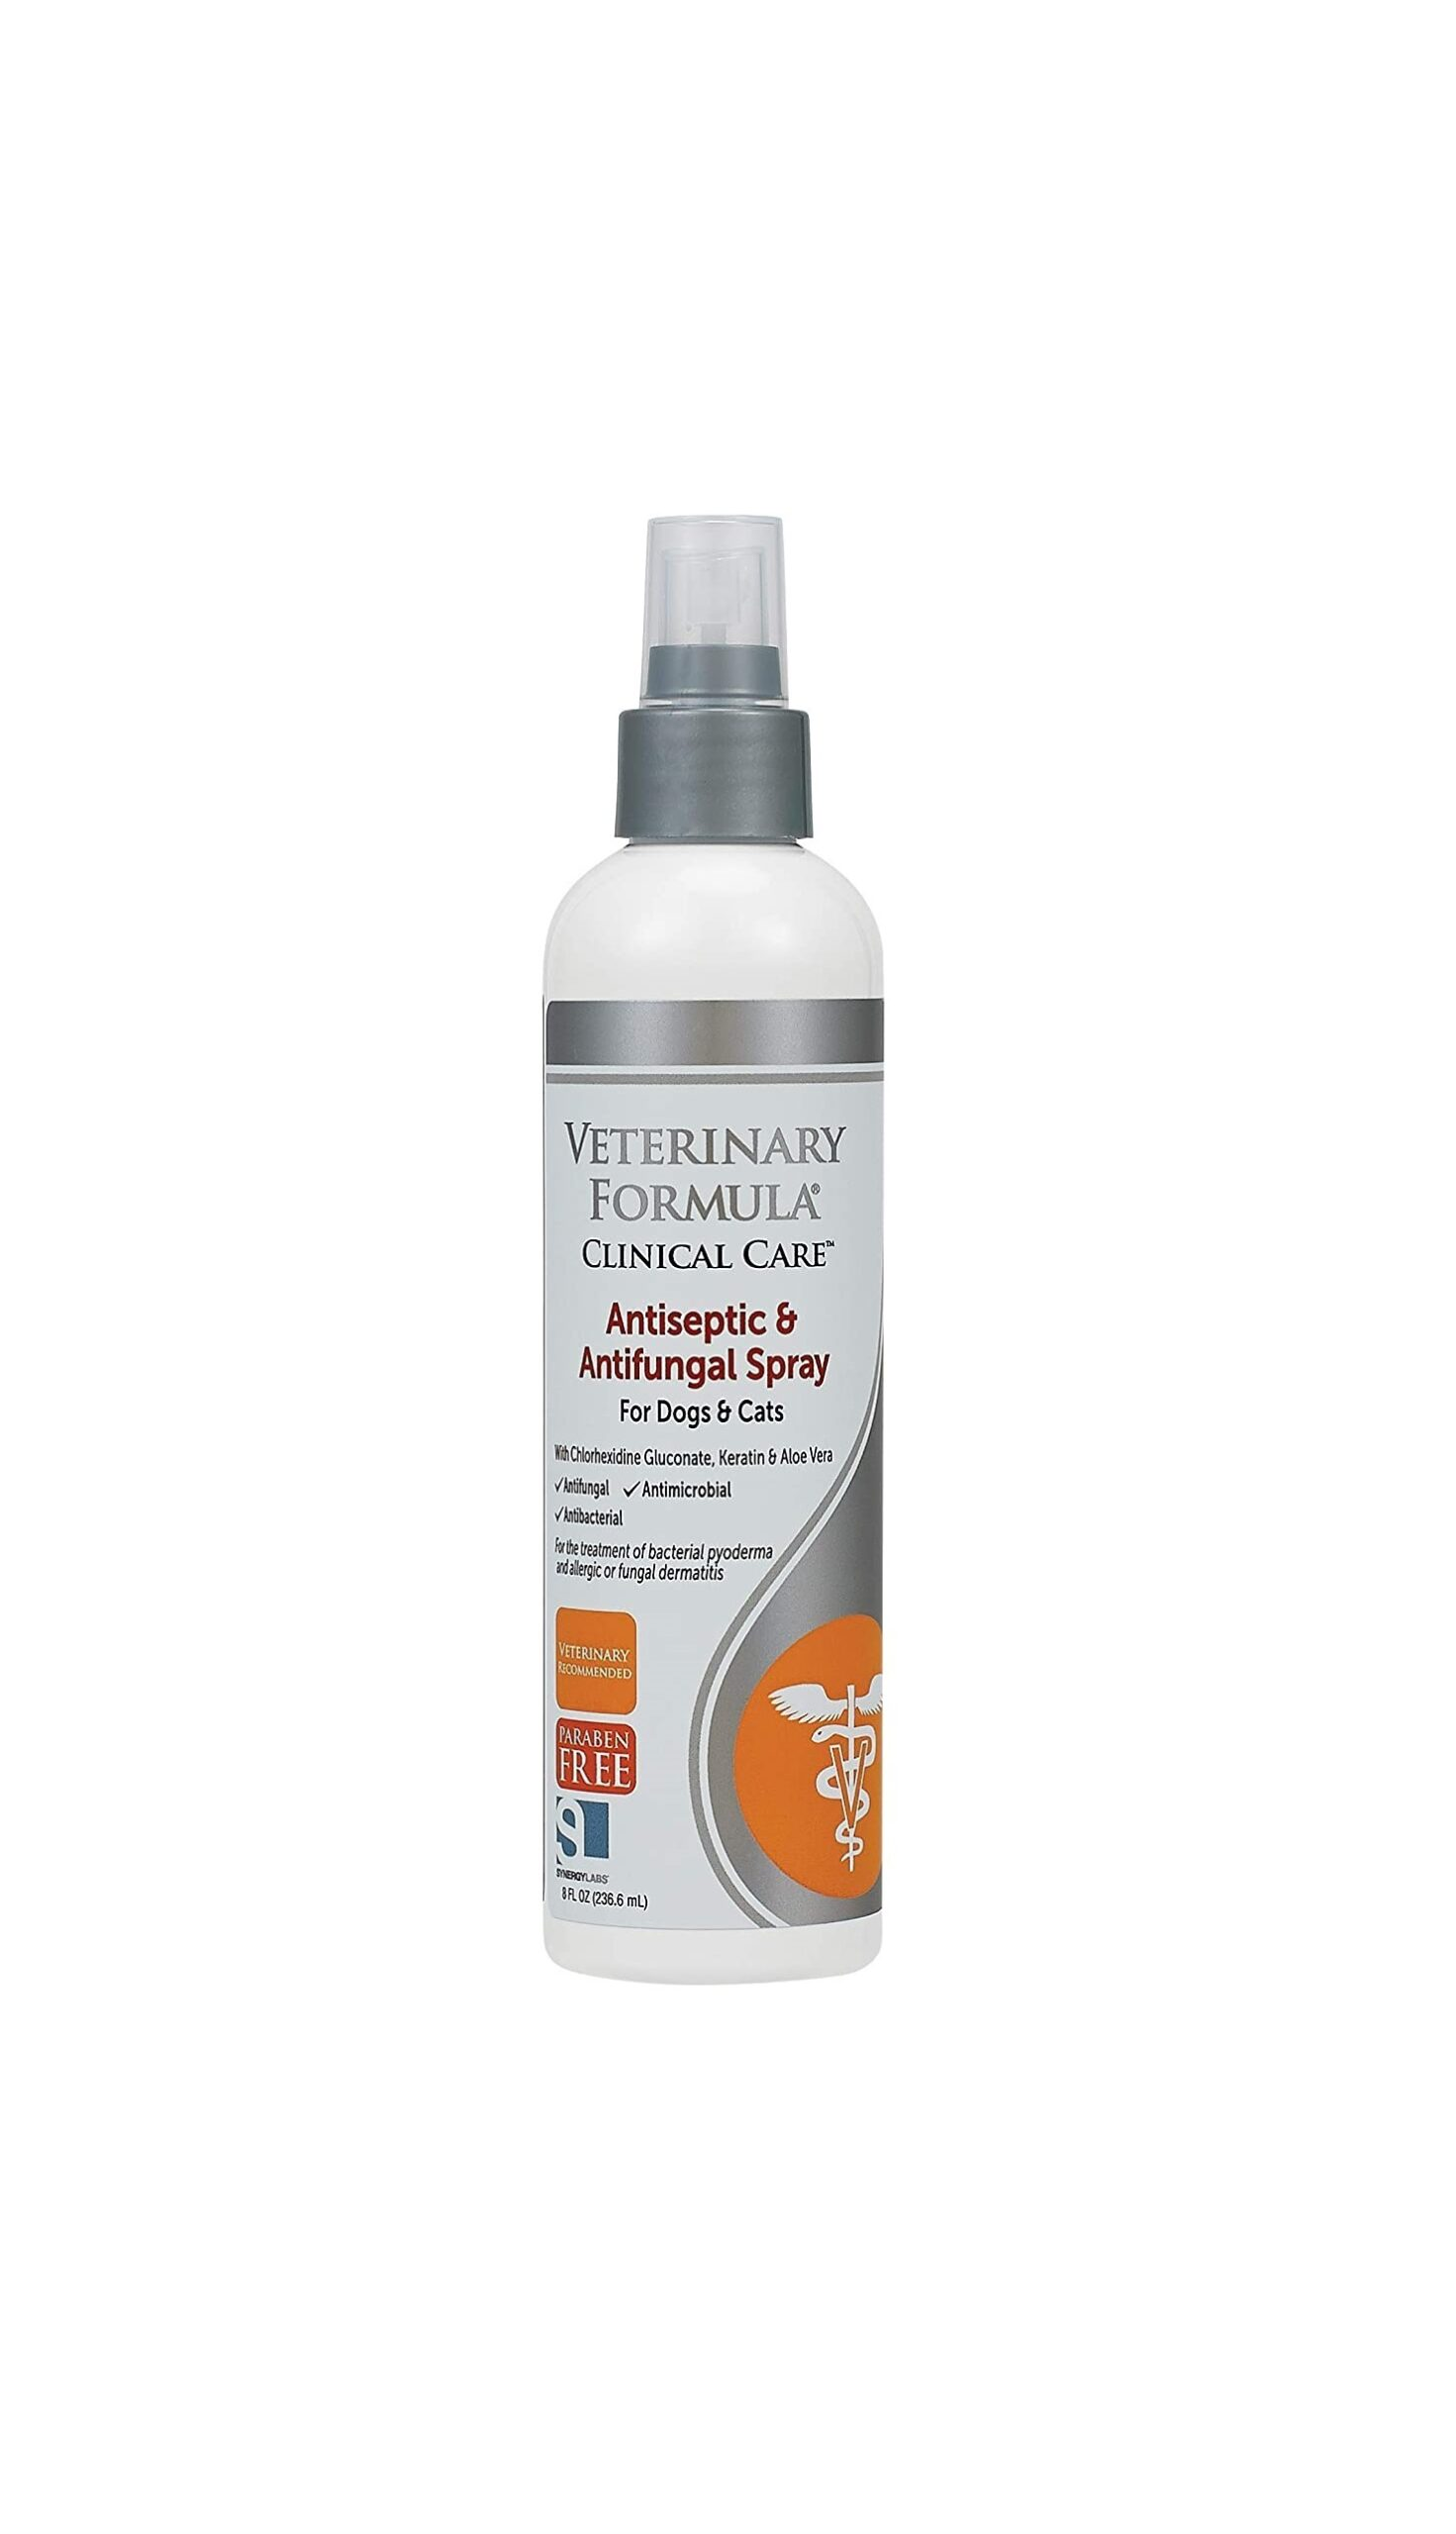 Veterinary ForAntiseptic and Antifungal Spray for dogs and catsmula Clinical Care